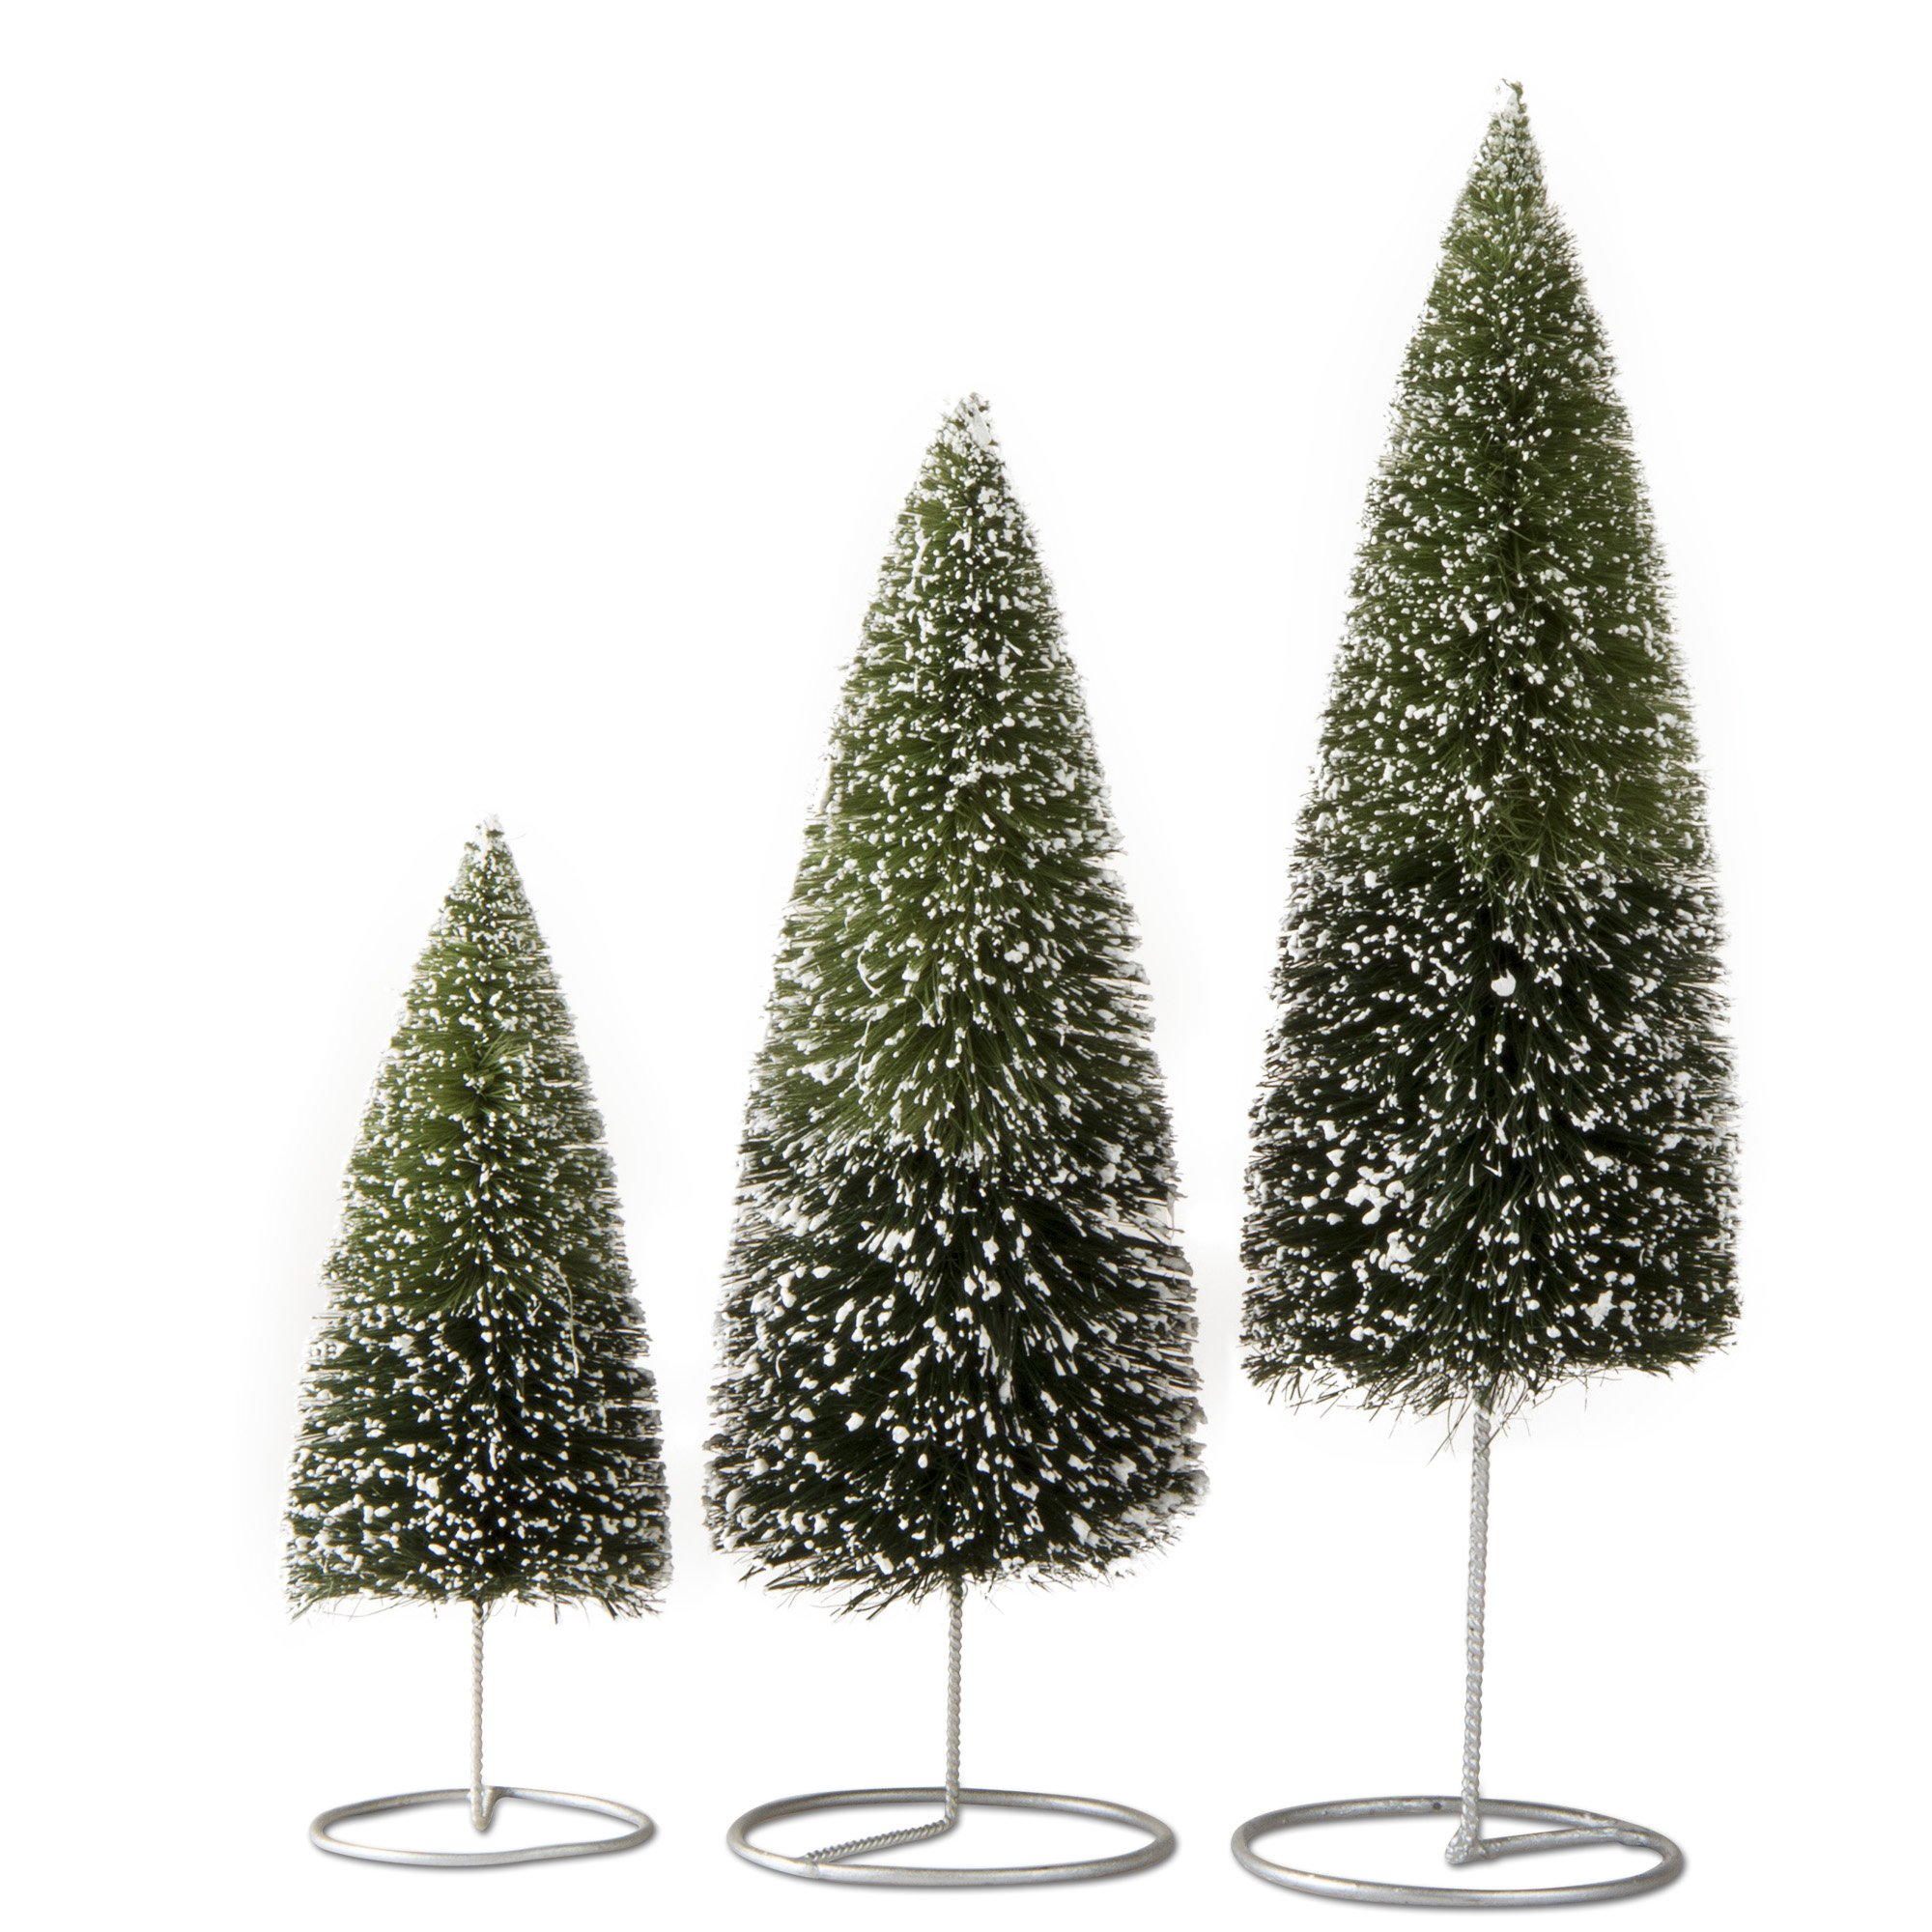 tag ltd Tag Woodland Trees Set of 3 by tag ltd